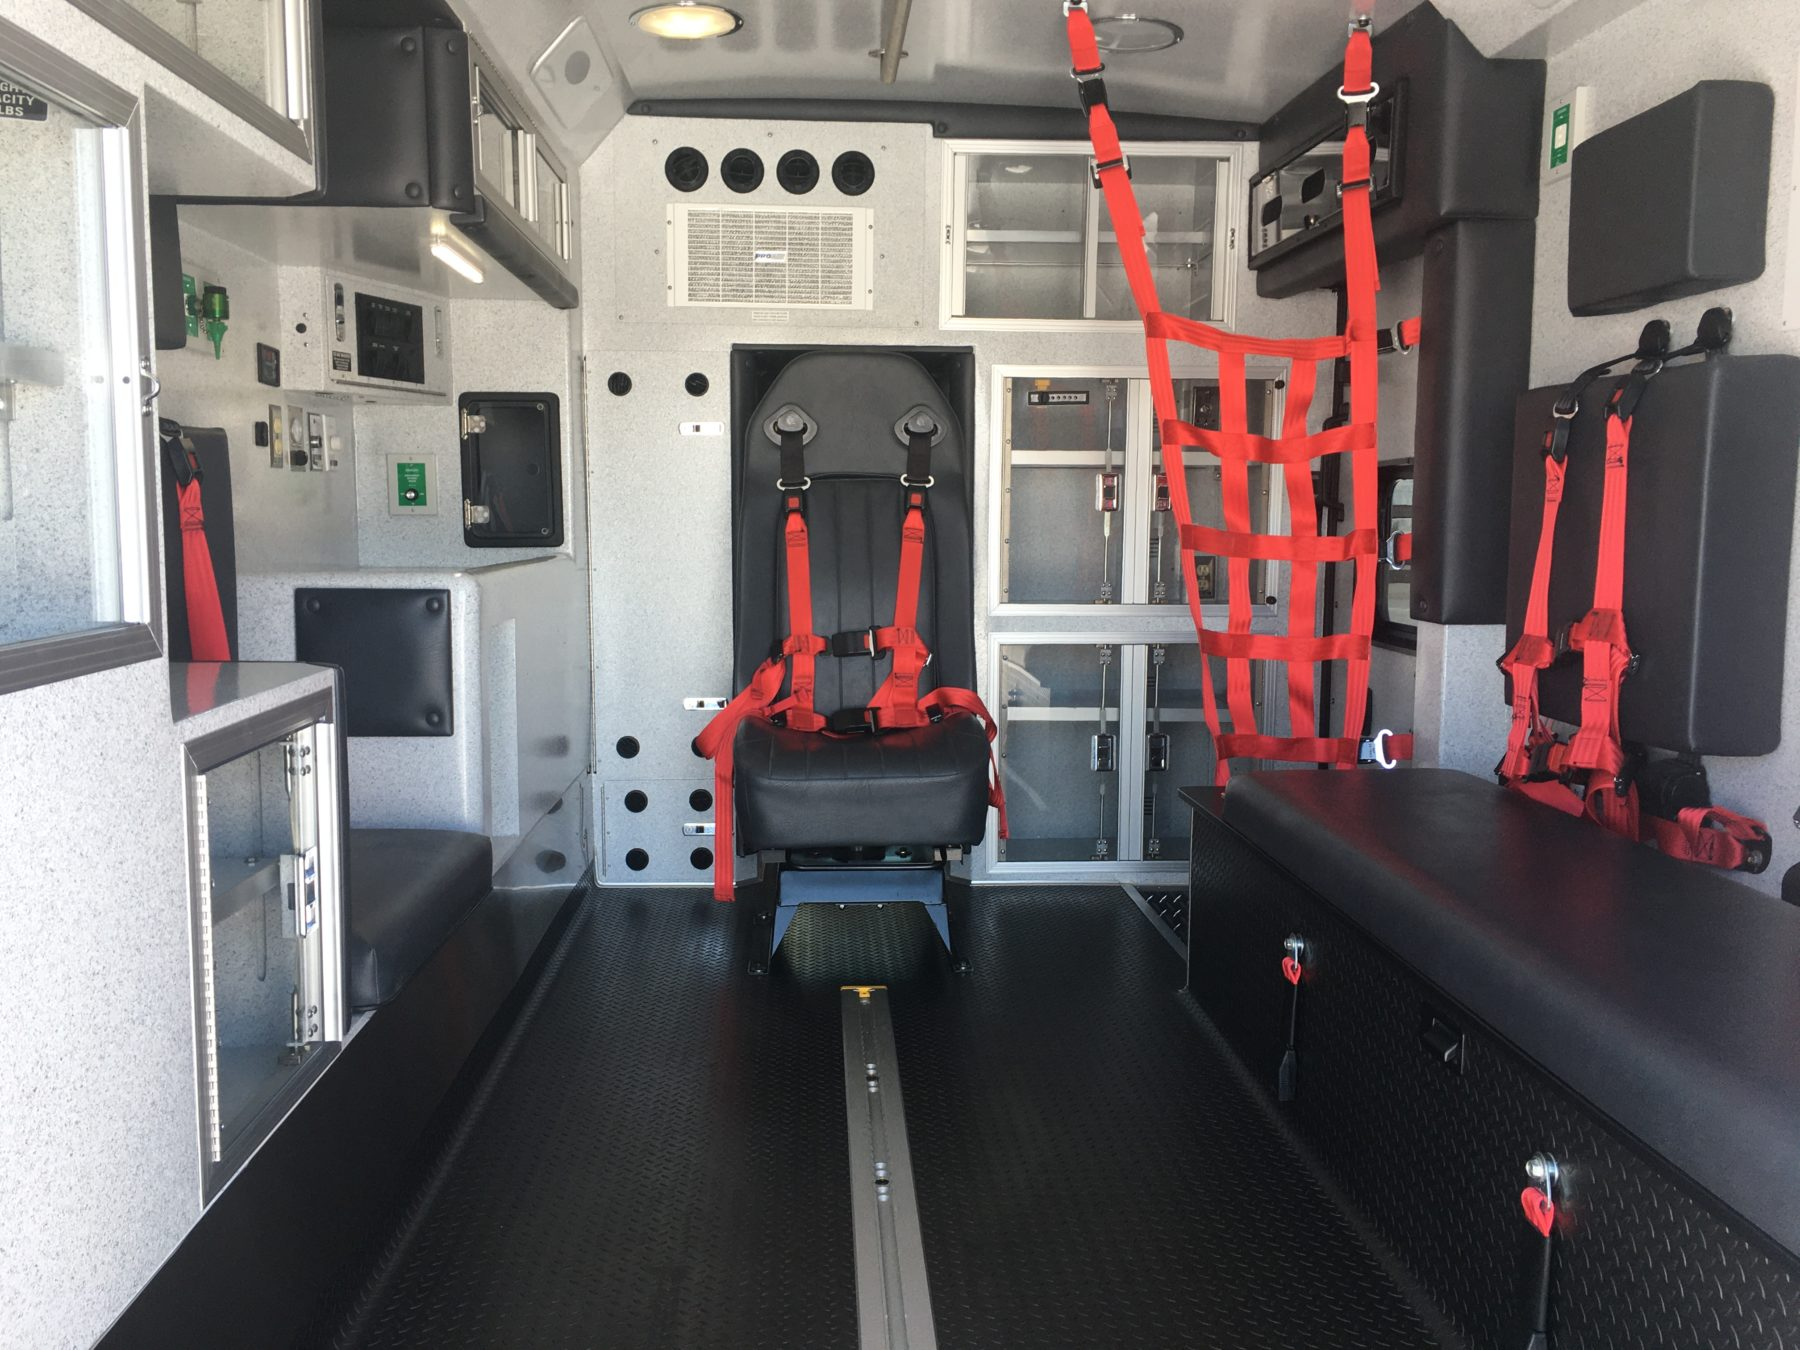 2020 Ram 4500 4x4 Heavy Duty Ambulance For Sale – Picture 2